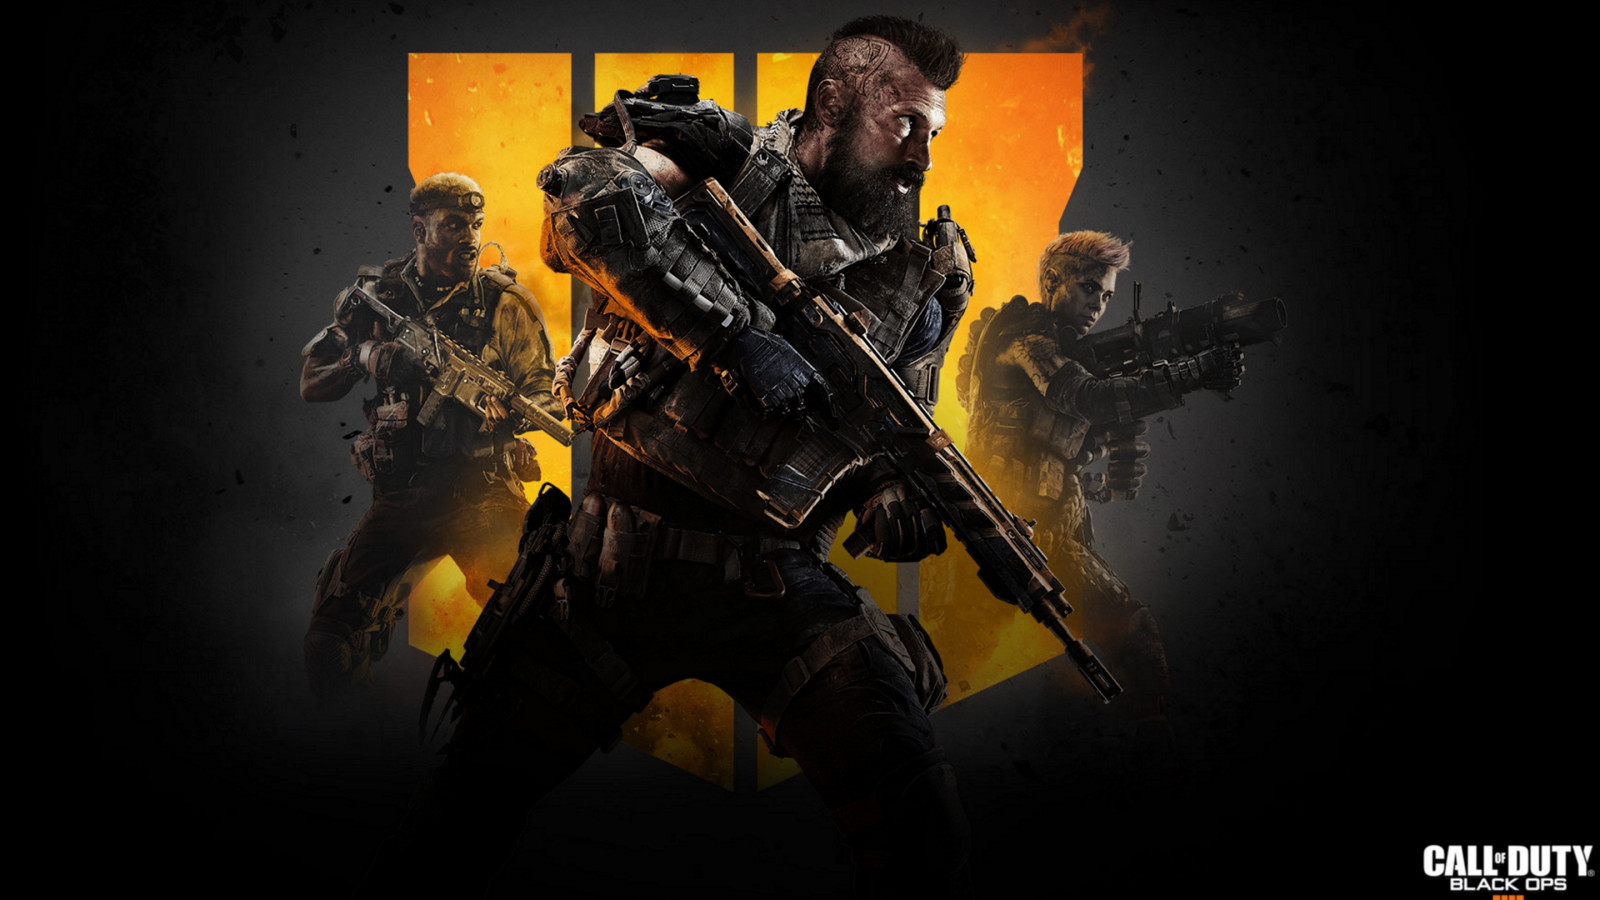 Call of Duty Black Ops 4 | 1600x900 wallpaper